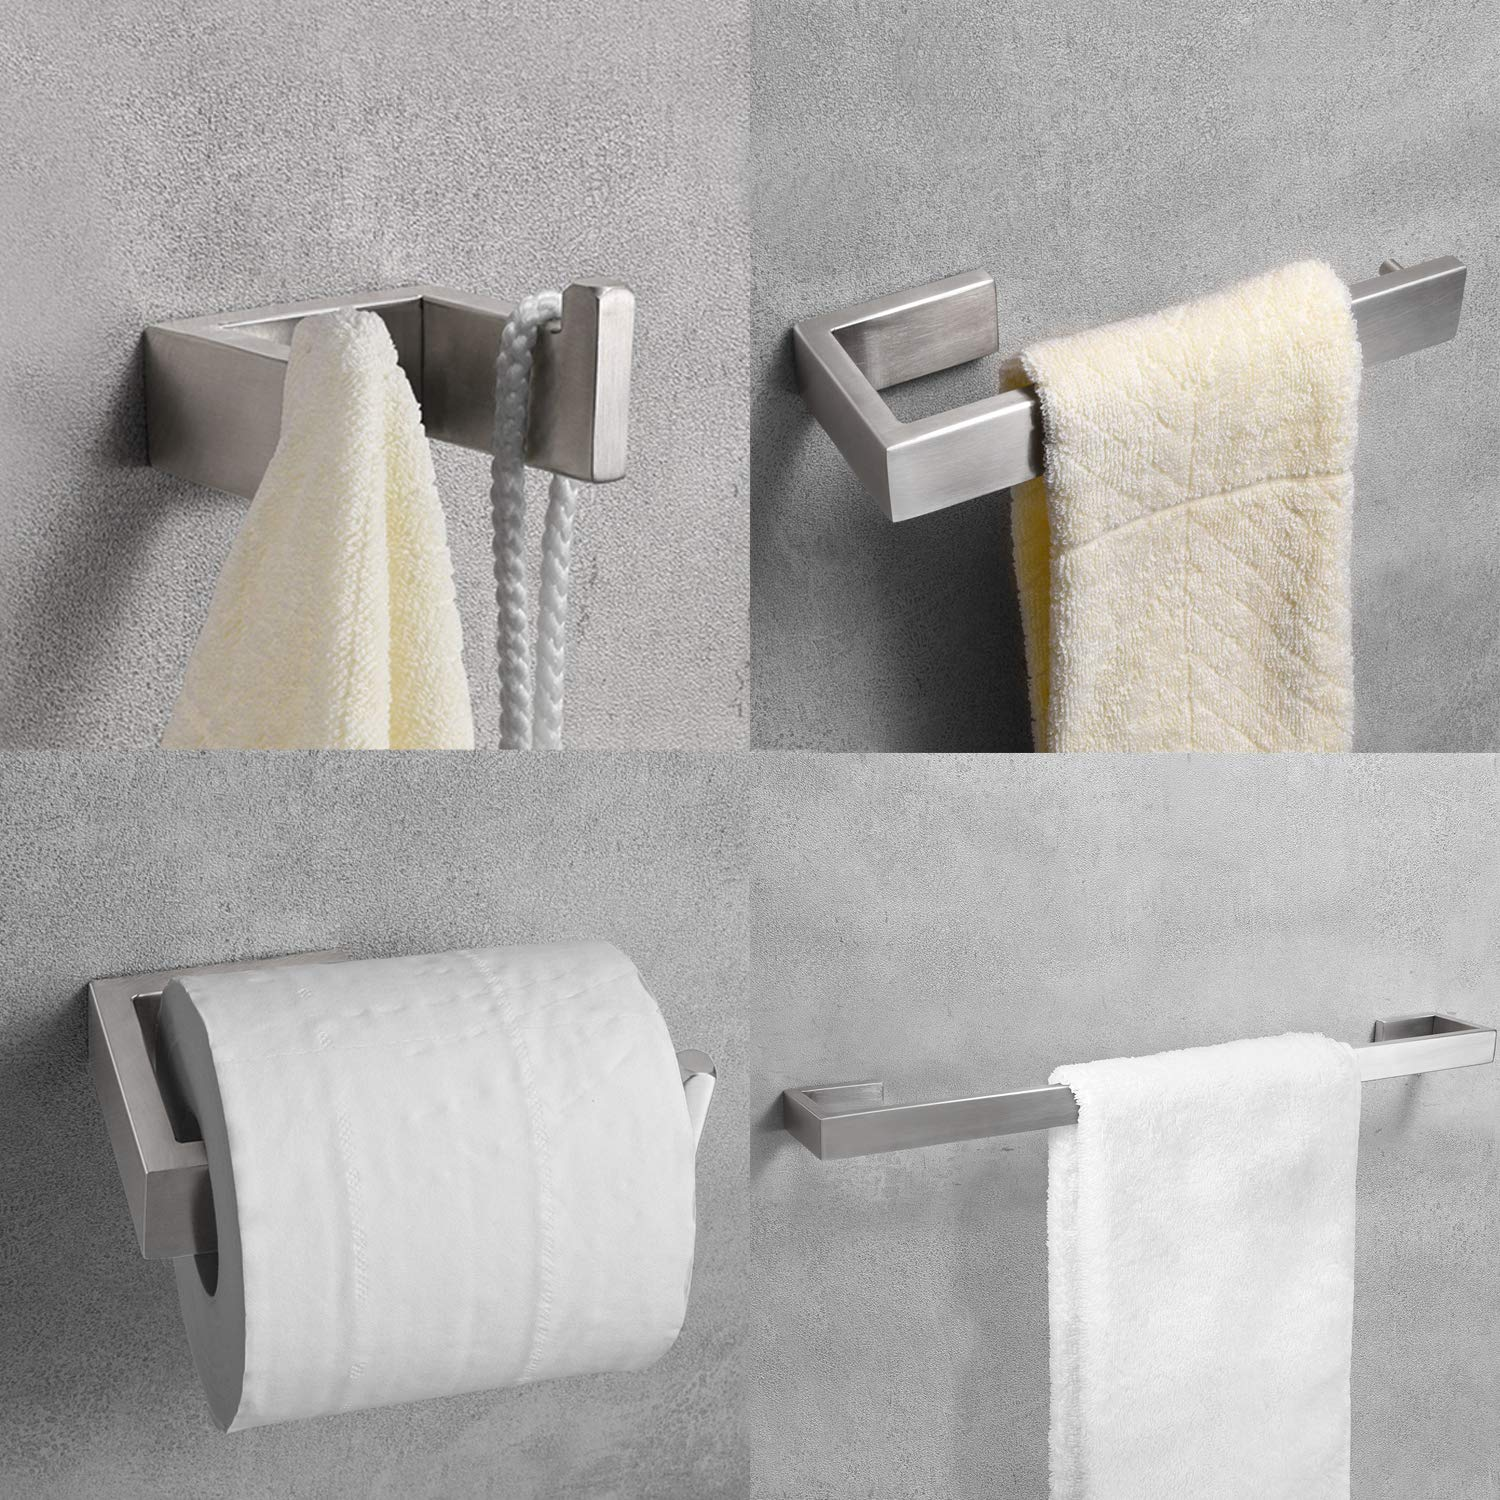 Nolimas SUS304 Stainless Steel Toilet Paper Roll Holder Wall Mounted Bathroom Hardware Rust Proof Toilet Tissue Holder,Nickel Brushed